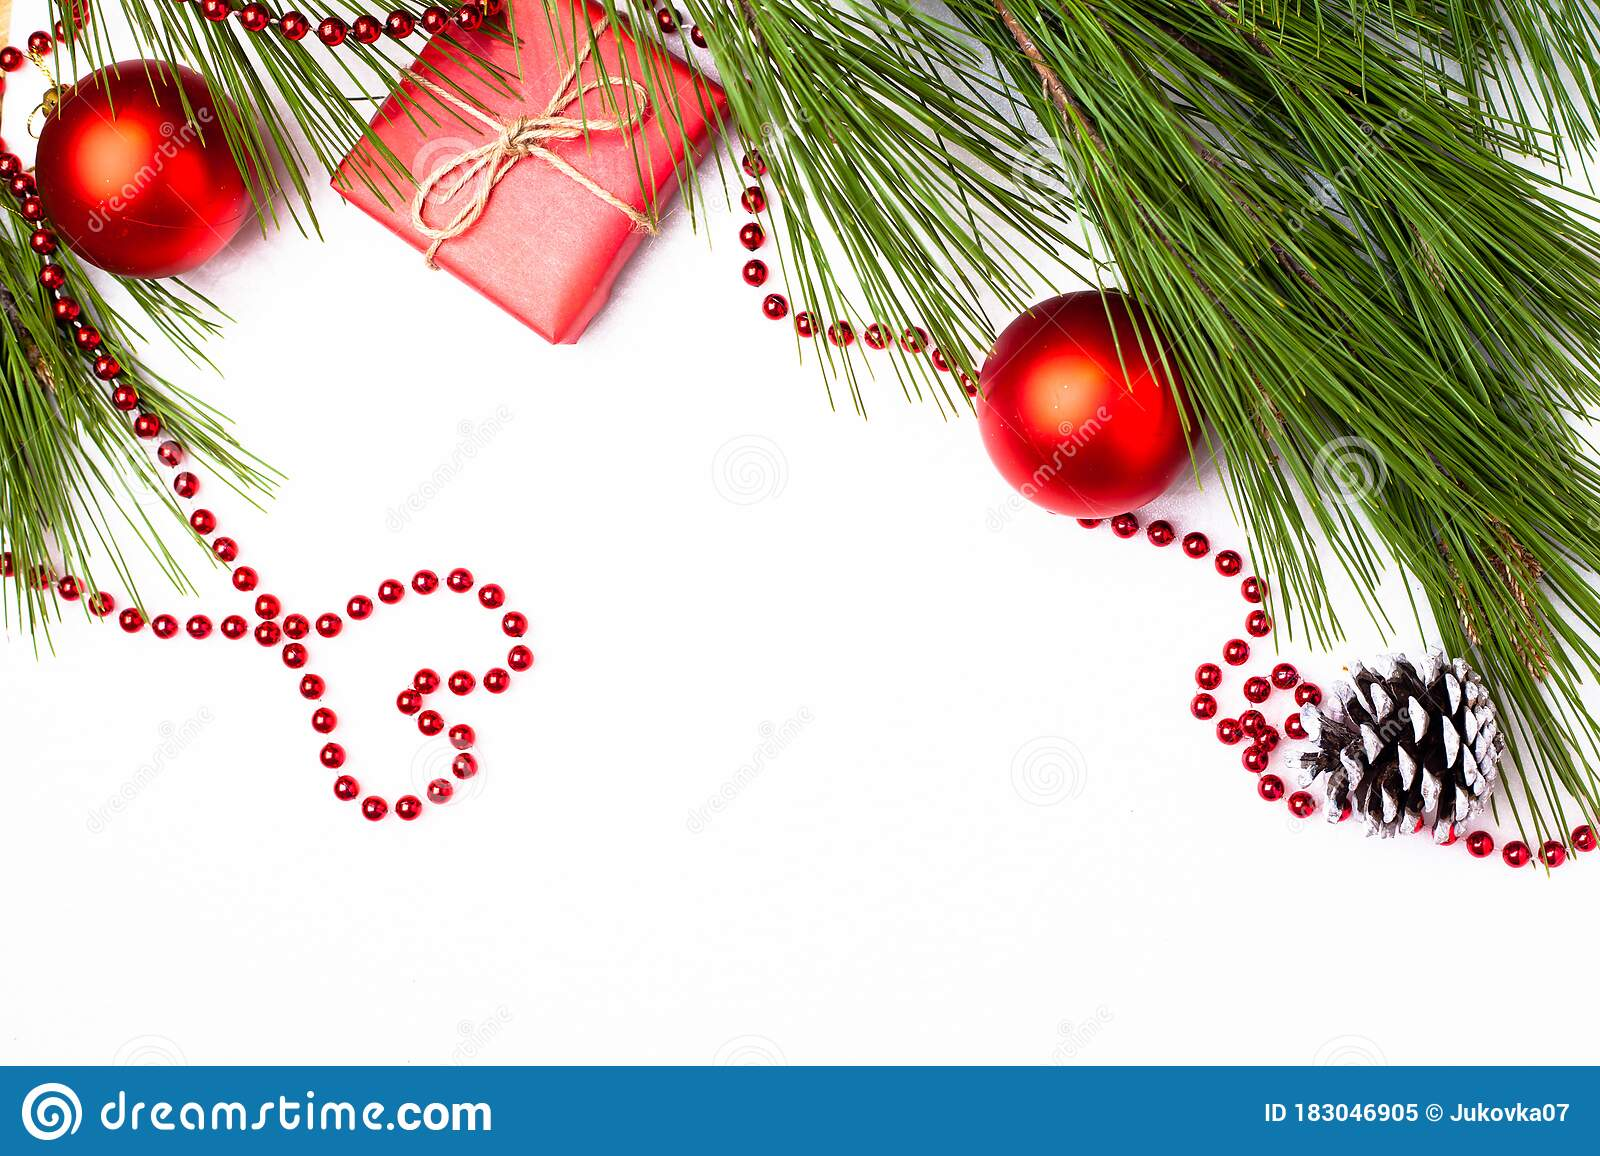 Chances For A White Christmas 2021 Background For The New Year Christmas 2021 Stock Image Image Of Card Special 183046905